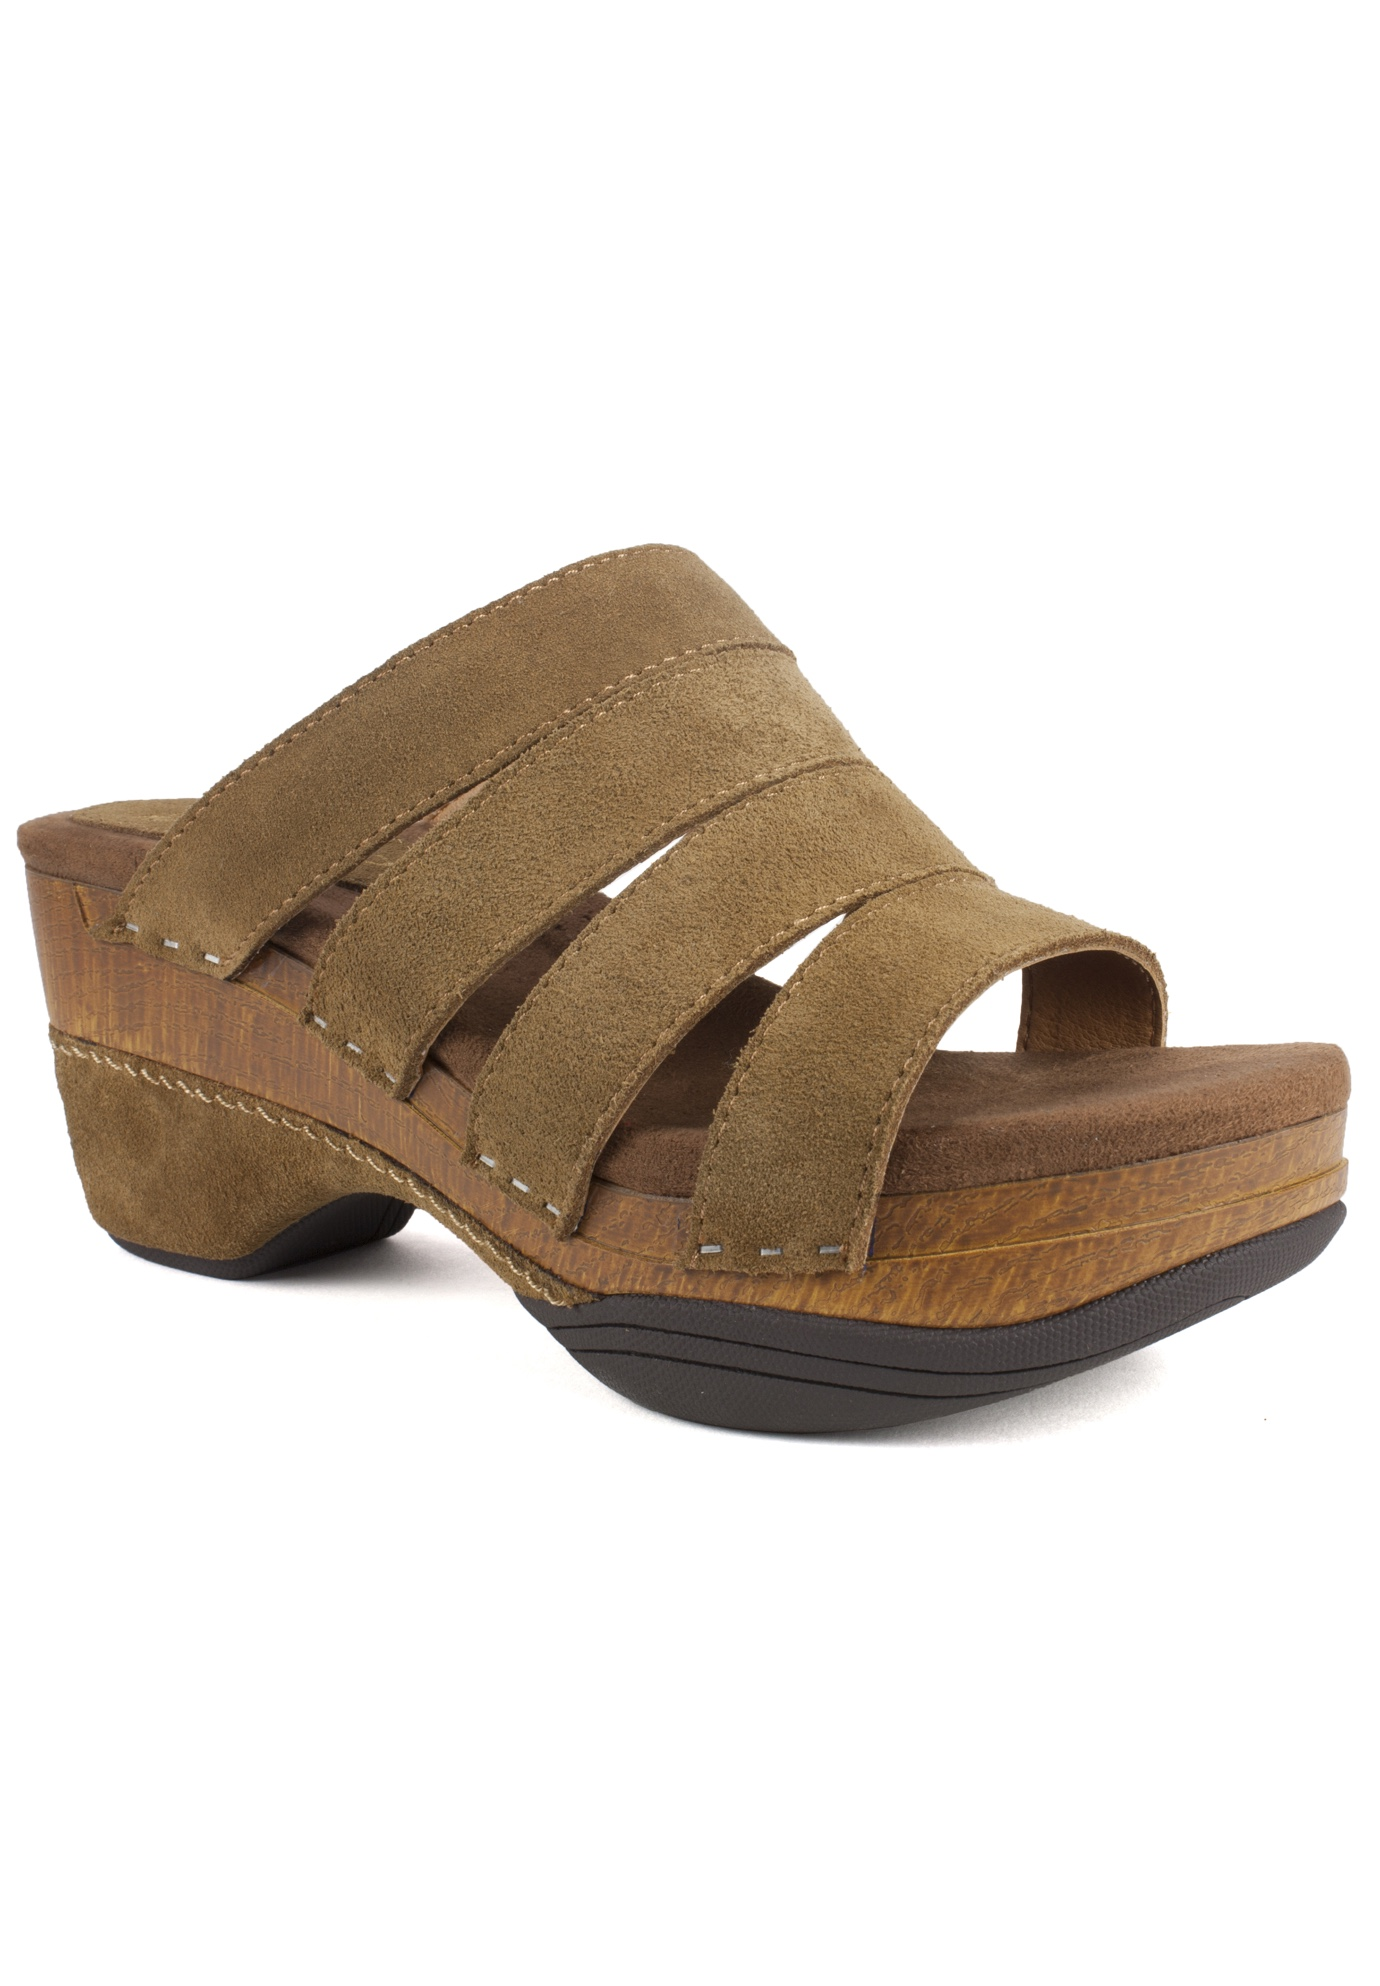 Montana Sandal by White Mountain,